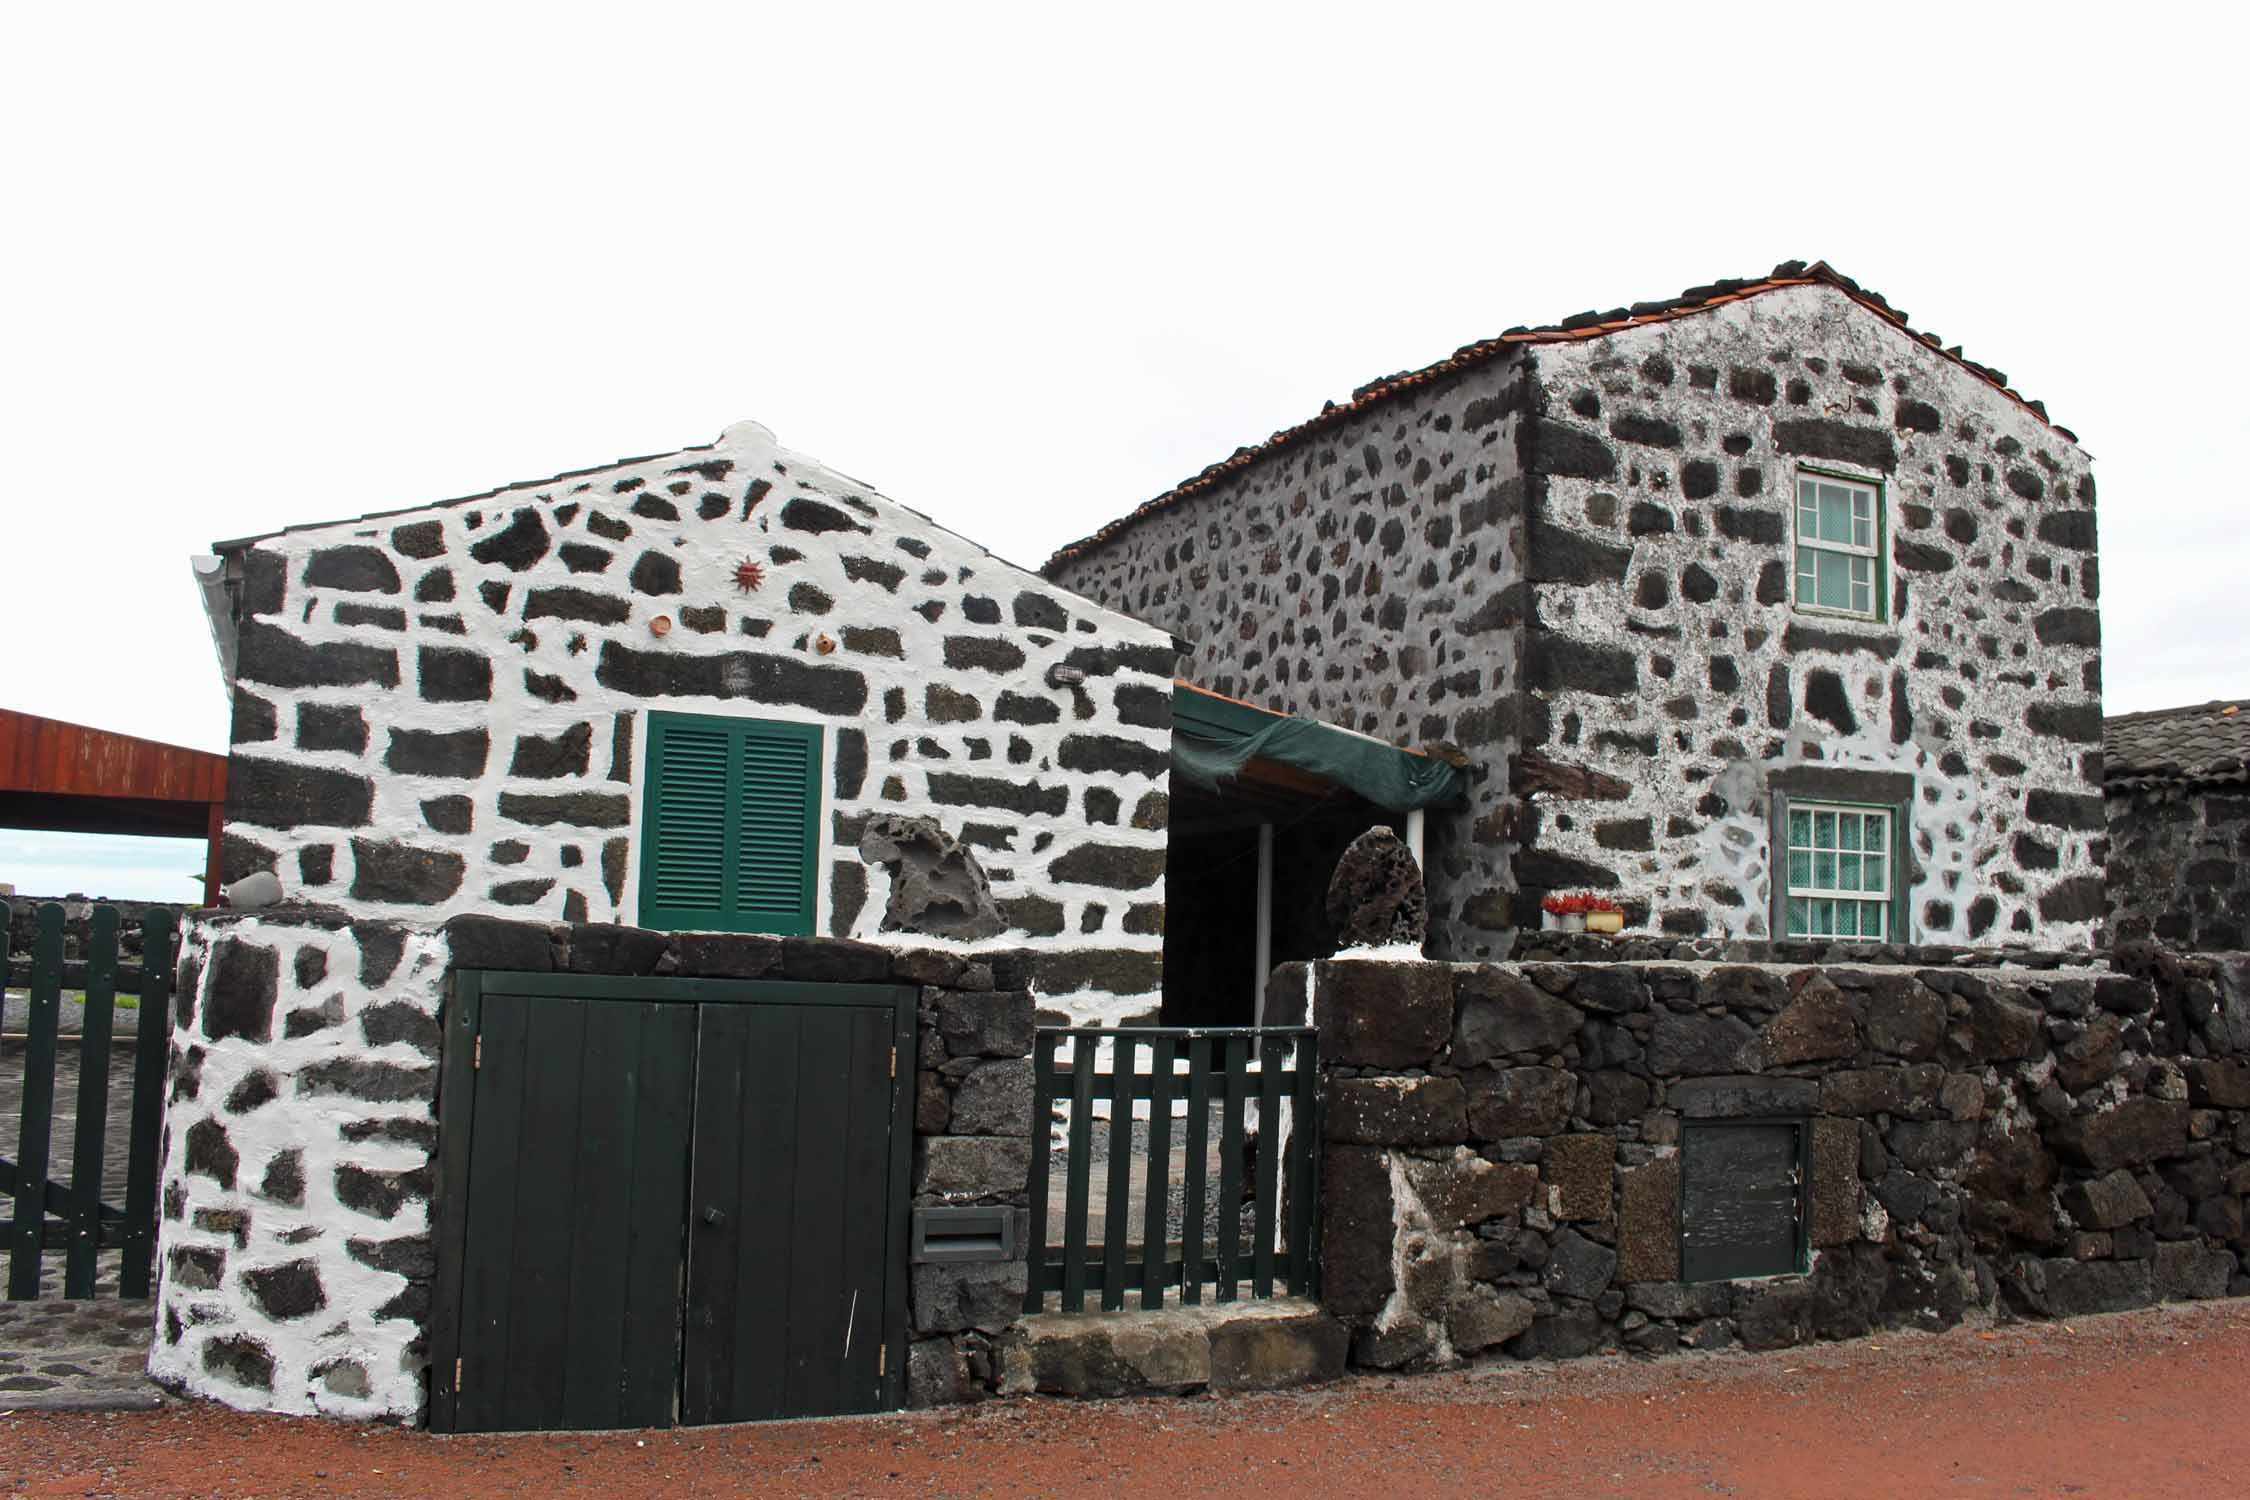 Azores, Pico Island, Lajido, typical house